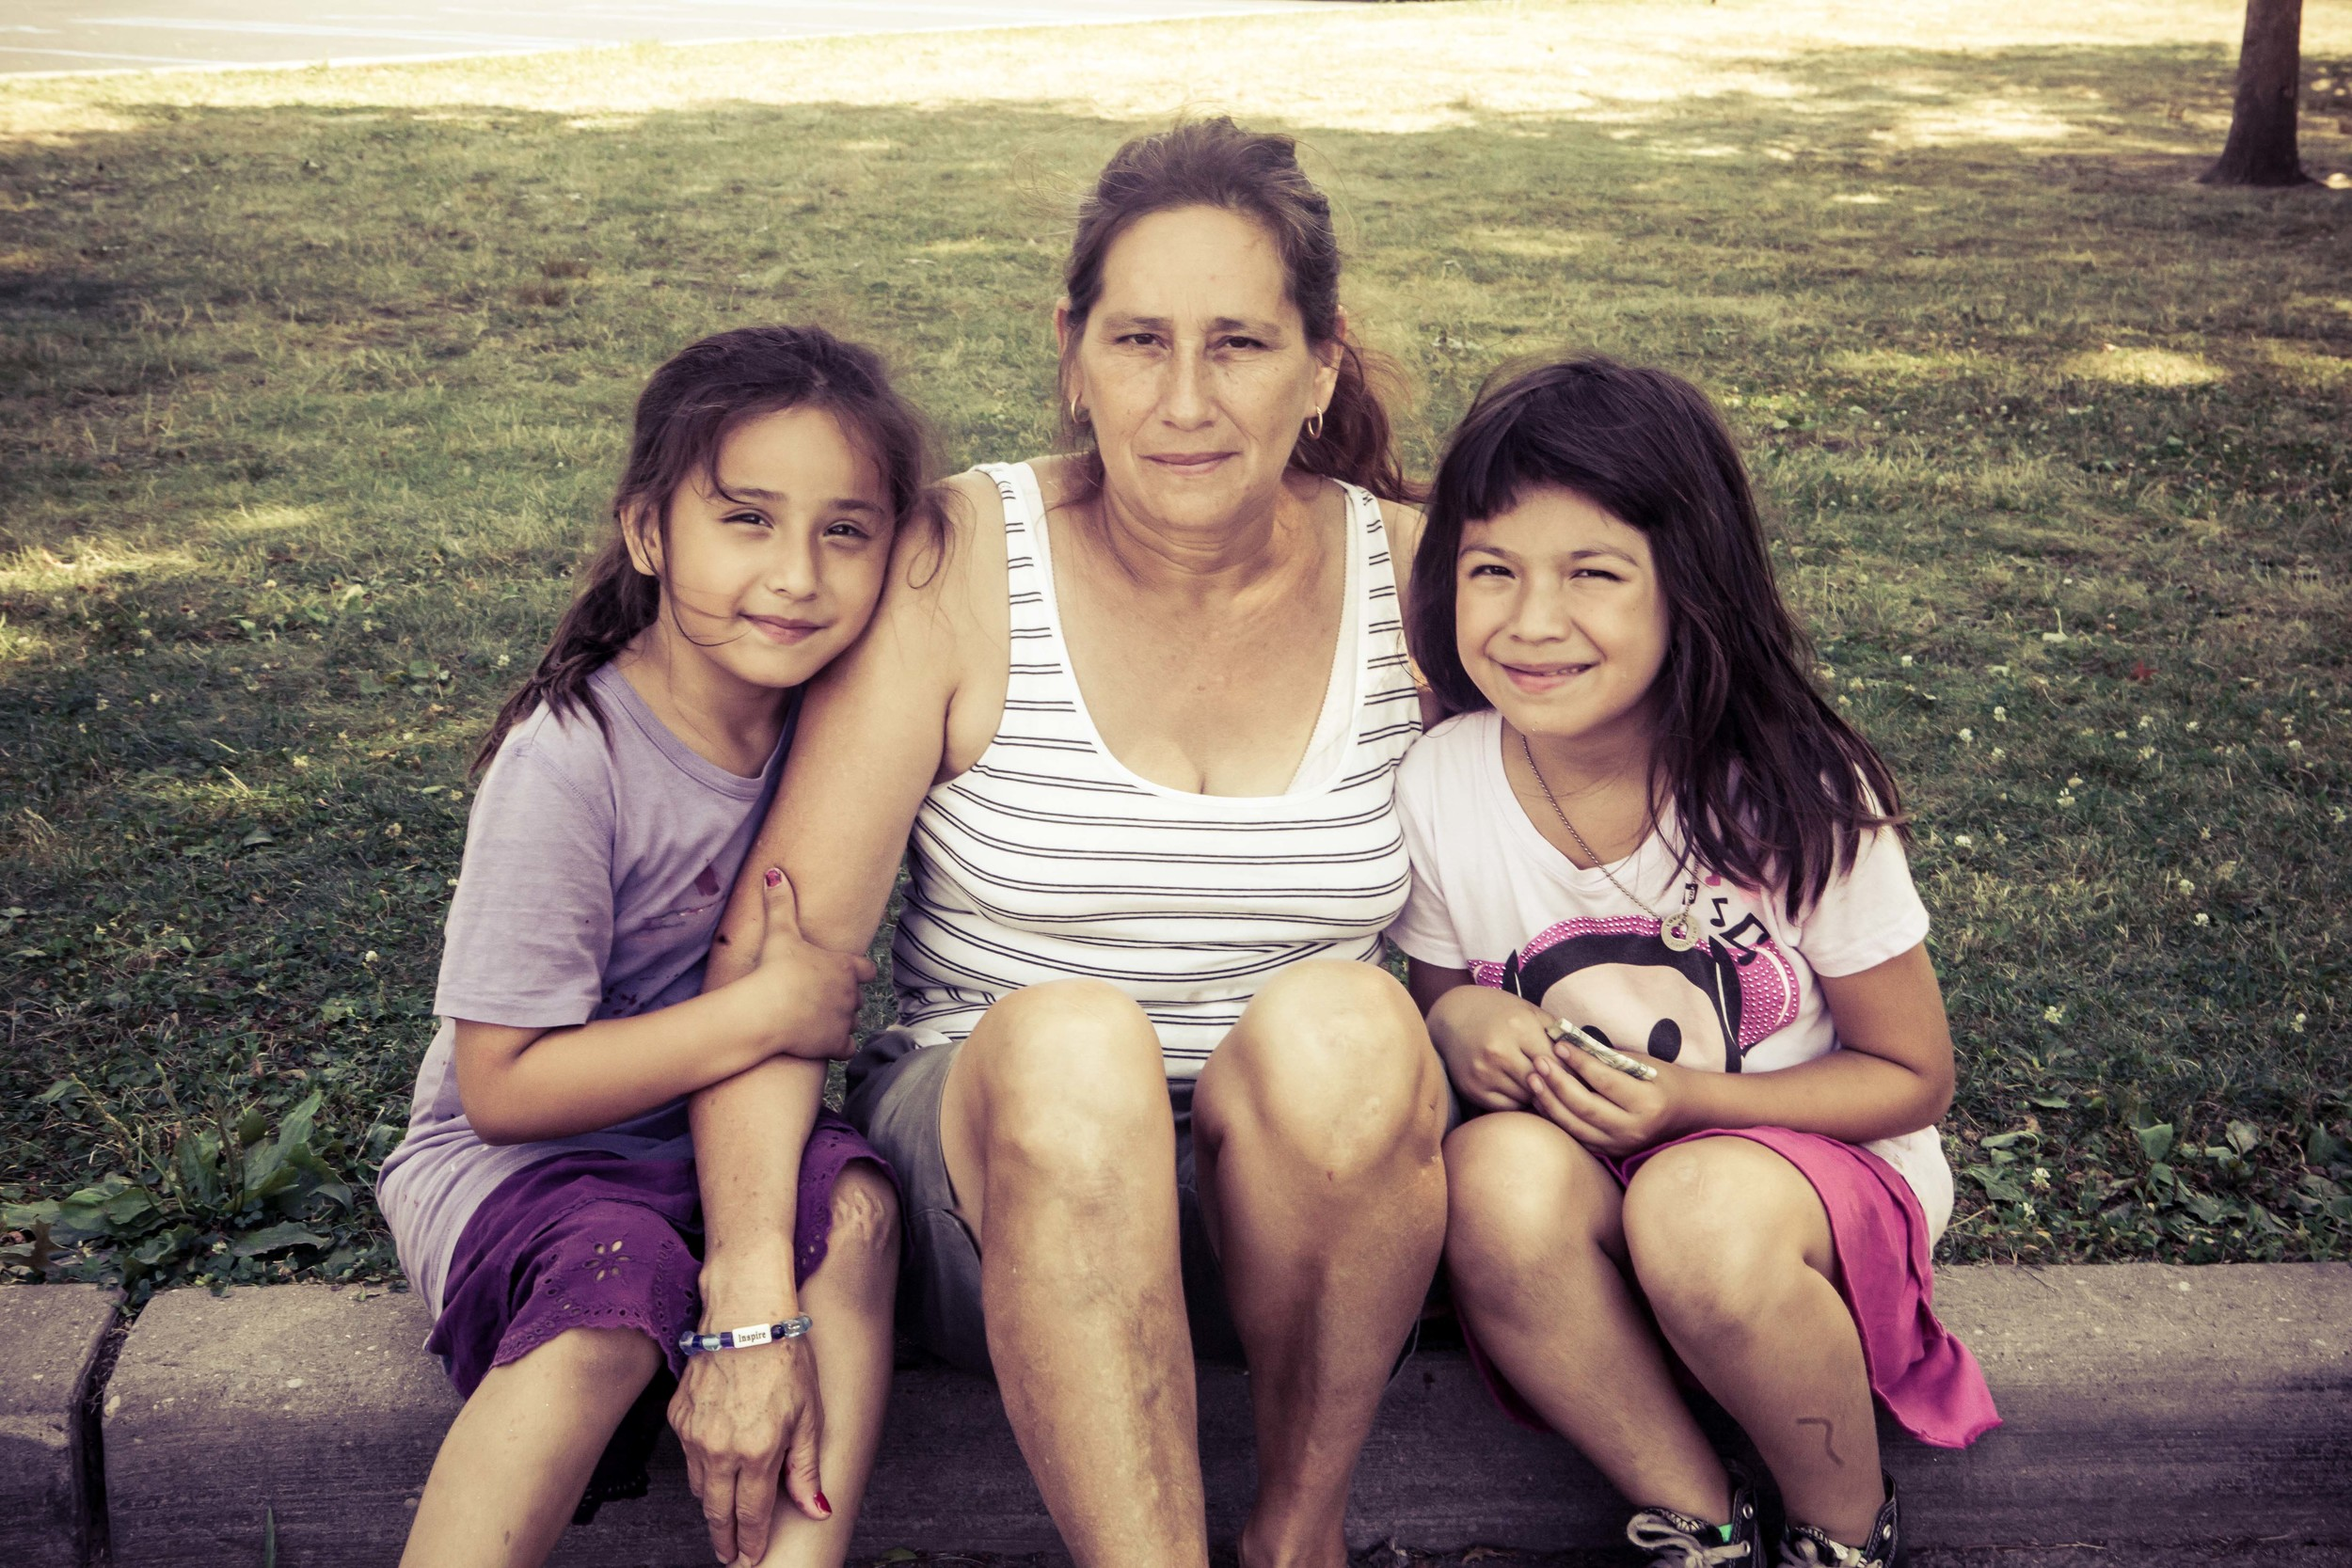 Ashley, their mother, and Diana